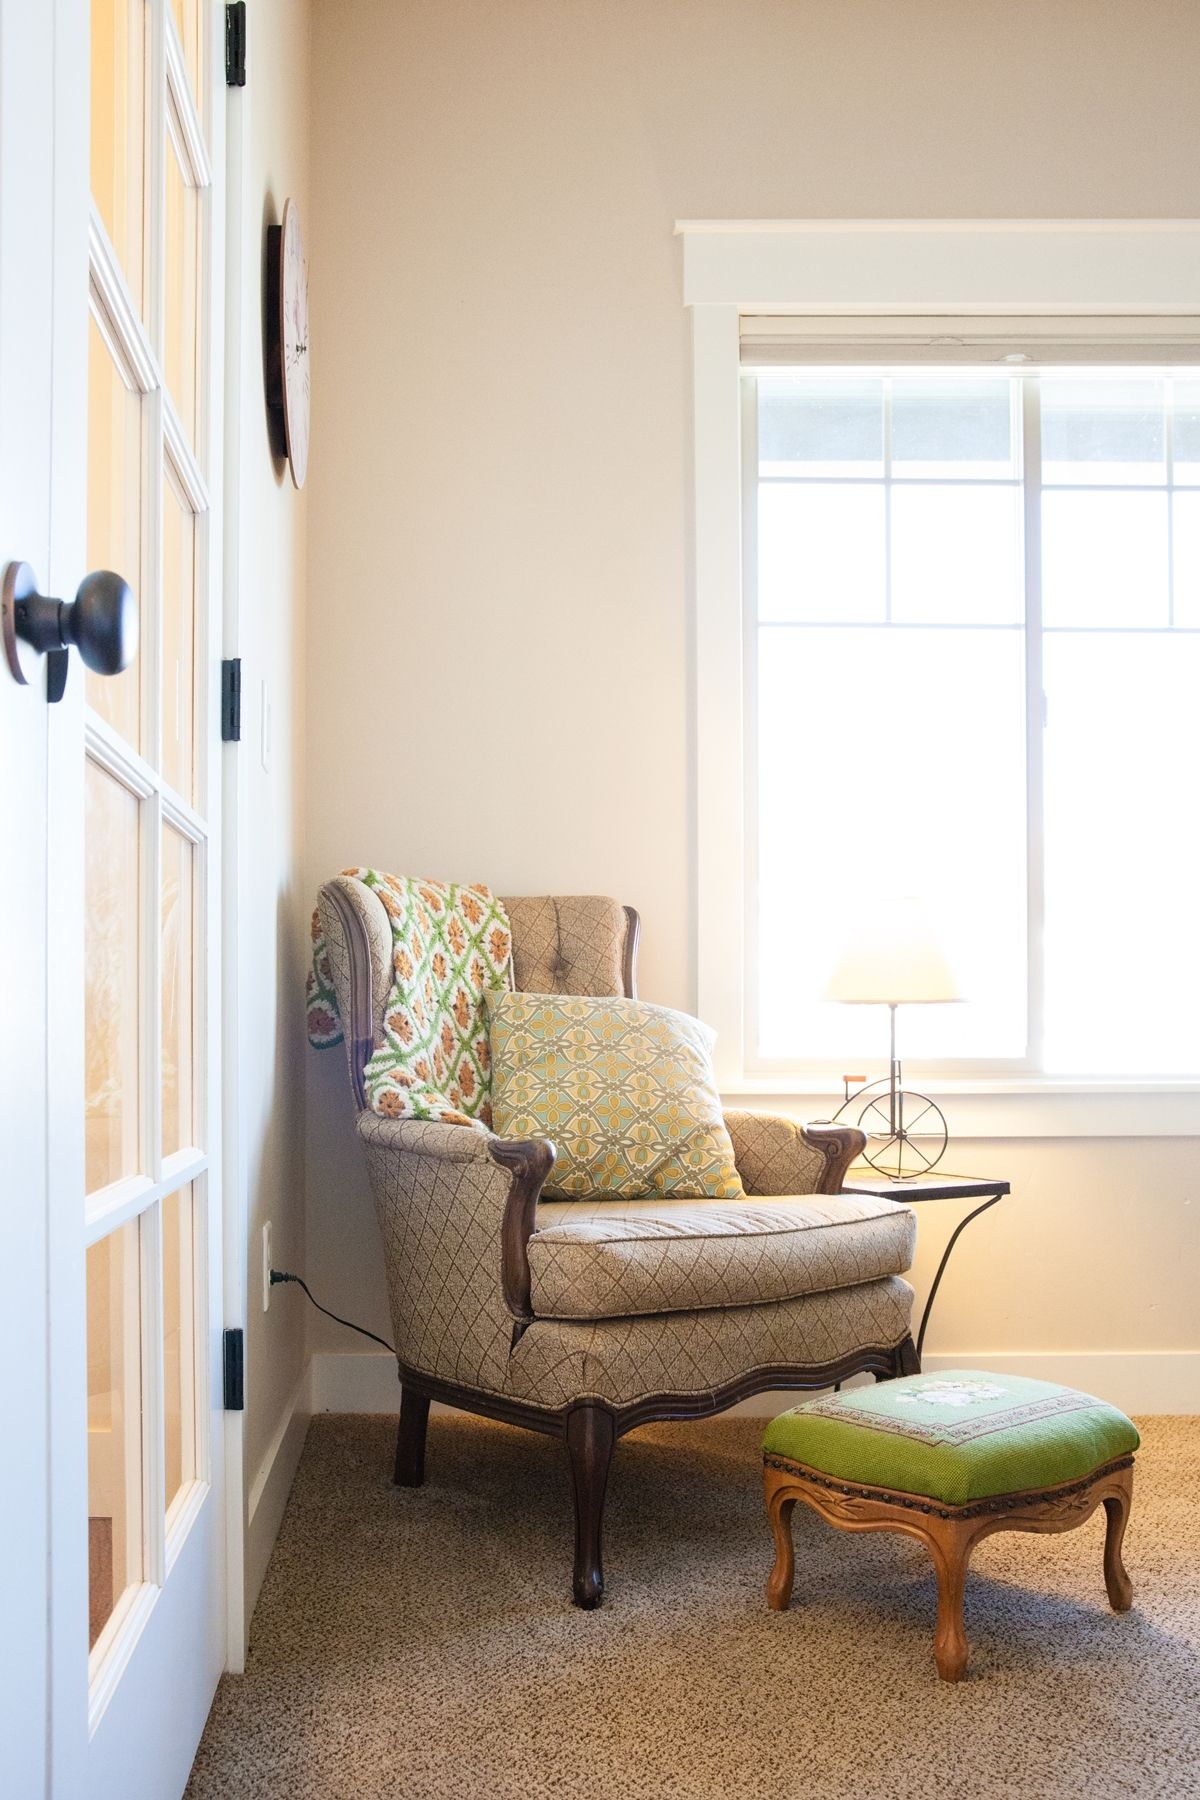 How to Decorate Entryway - seating